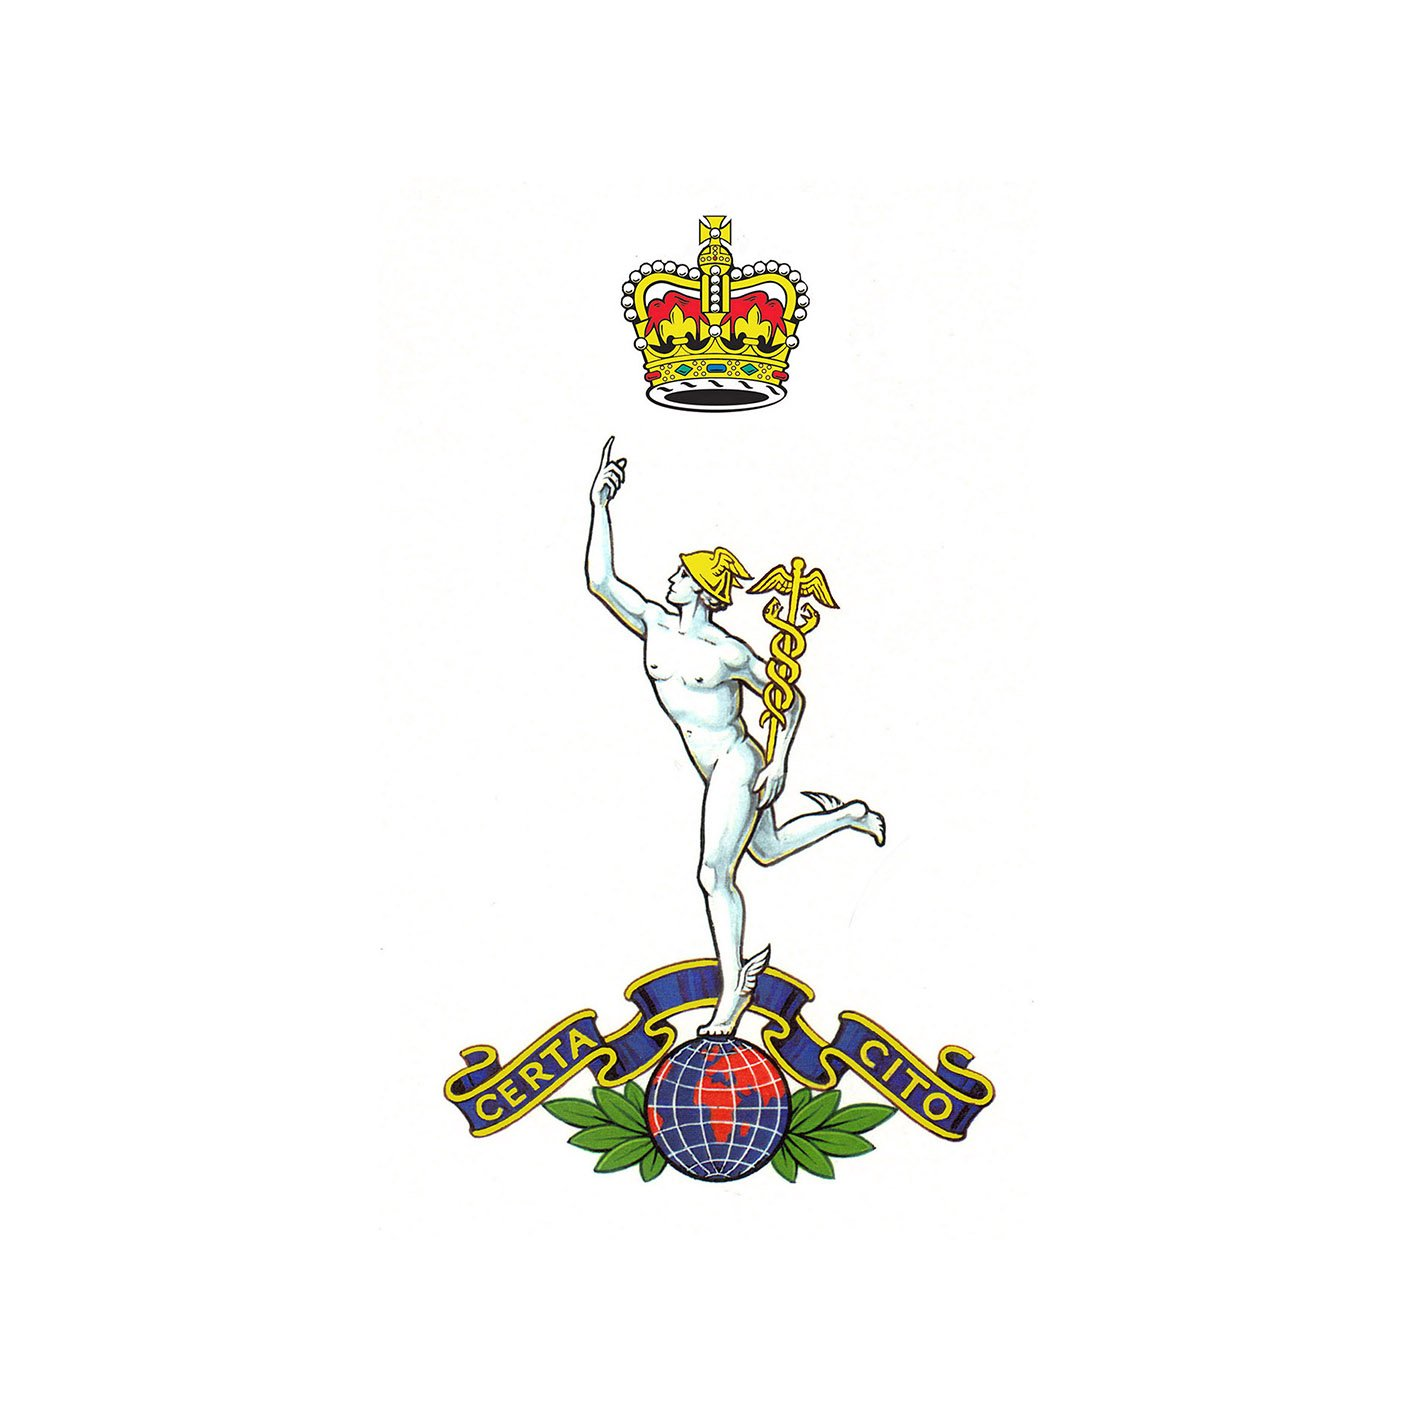 Official painted design for the Corps of The Royal Signals Cap Badge as accepted by the College of Heraldry.